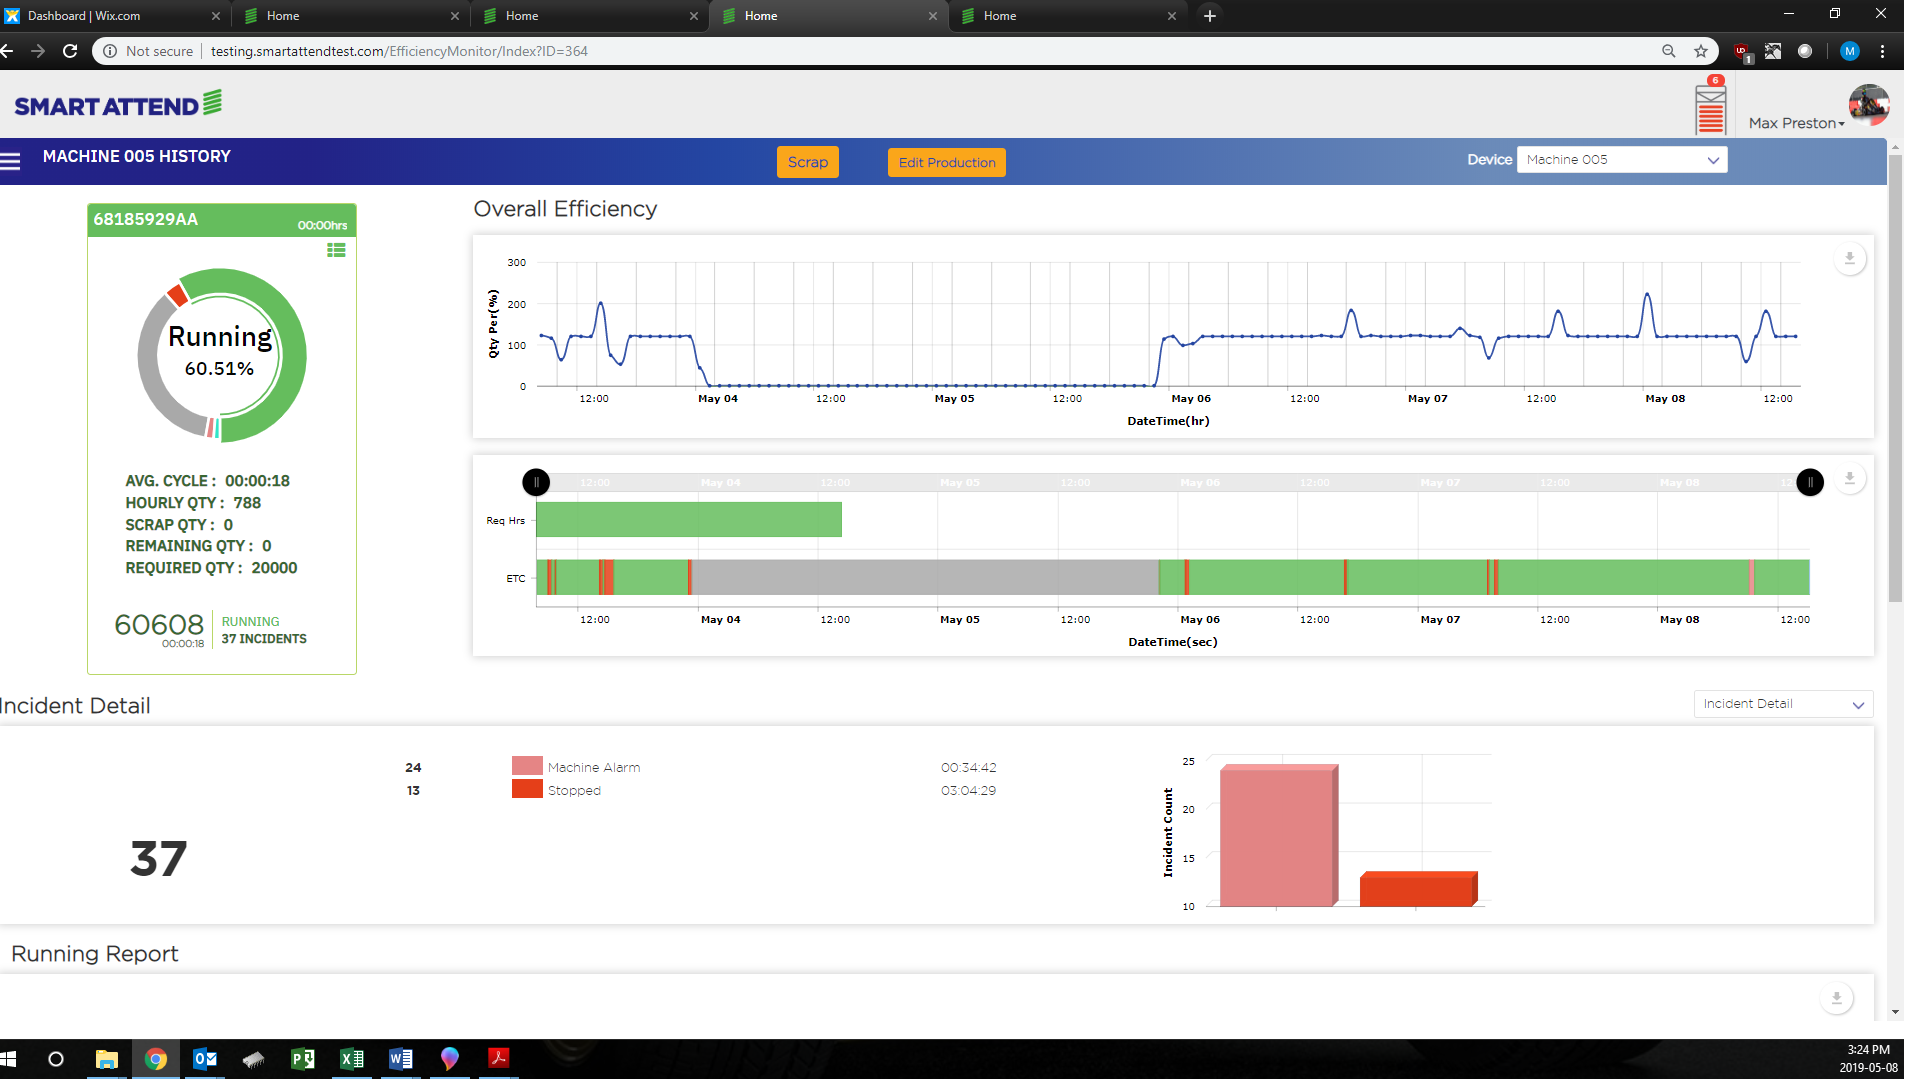 Smart Attend efficiency monitoring and running time